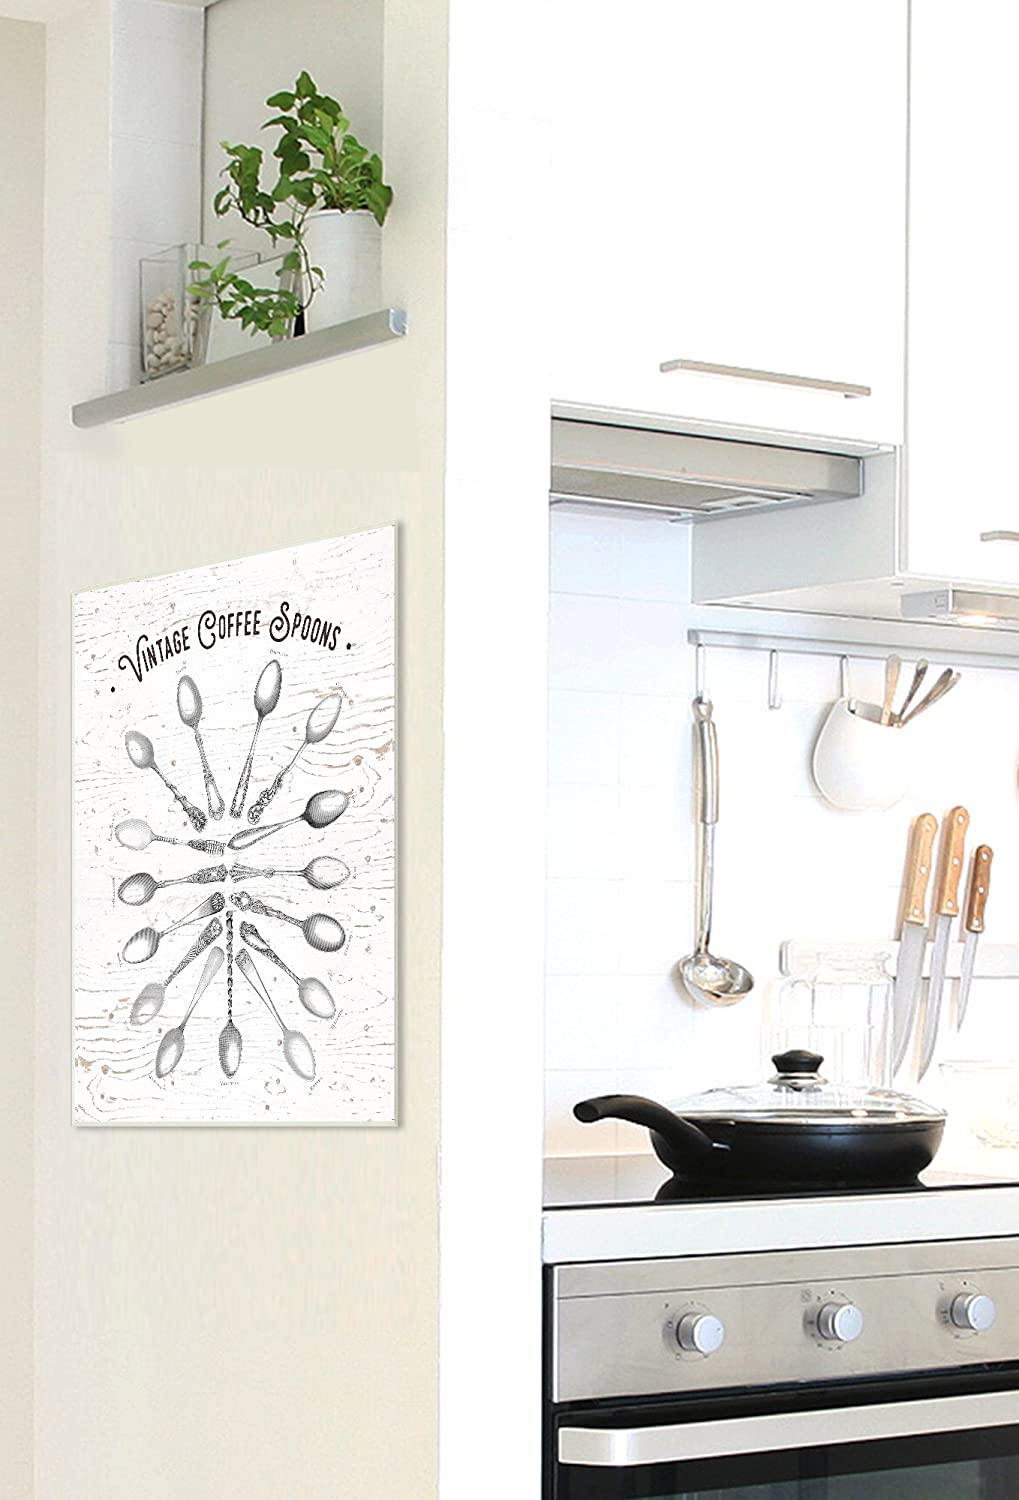 Proudly Made in USA 10 x 0.5 x 15 Stupell Home D/écor Vintage Coffee Spoons Illustration Wall Plaque Art